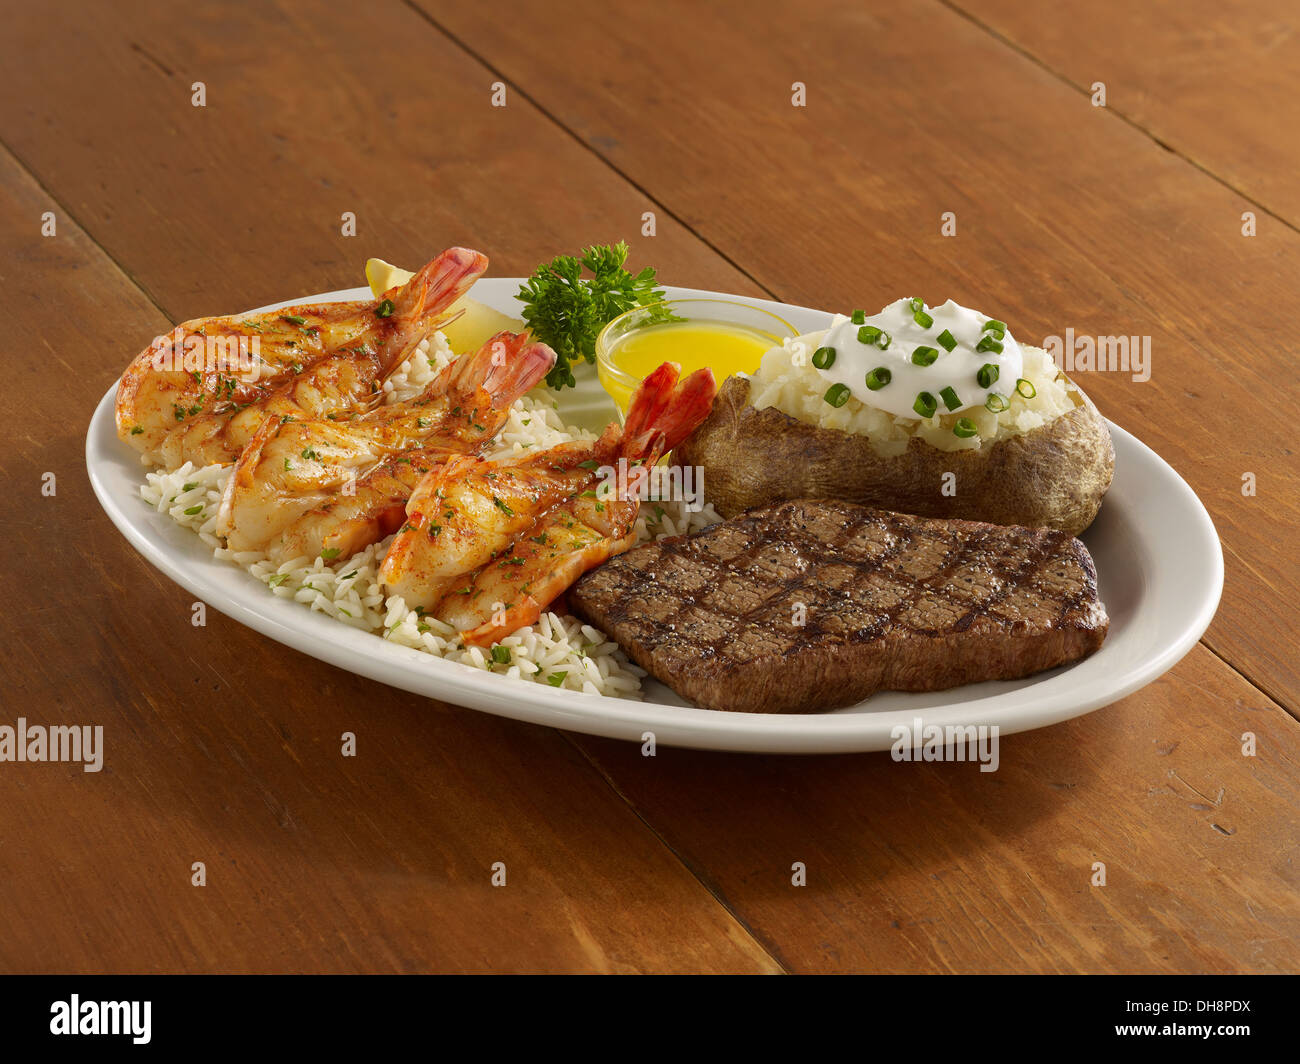 Grilled shrimp and steak with baked potato Stock Photo